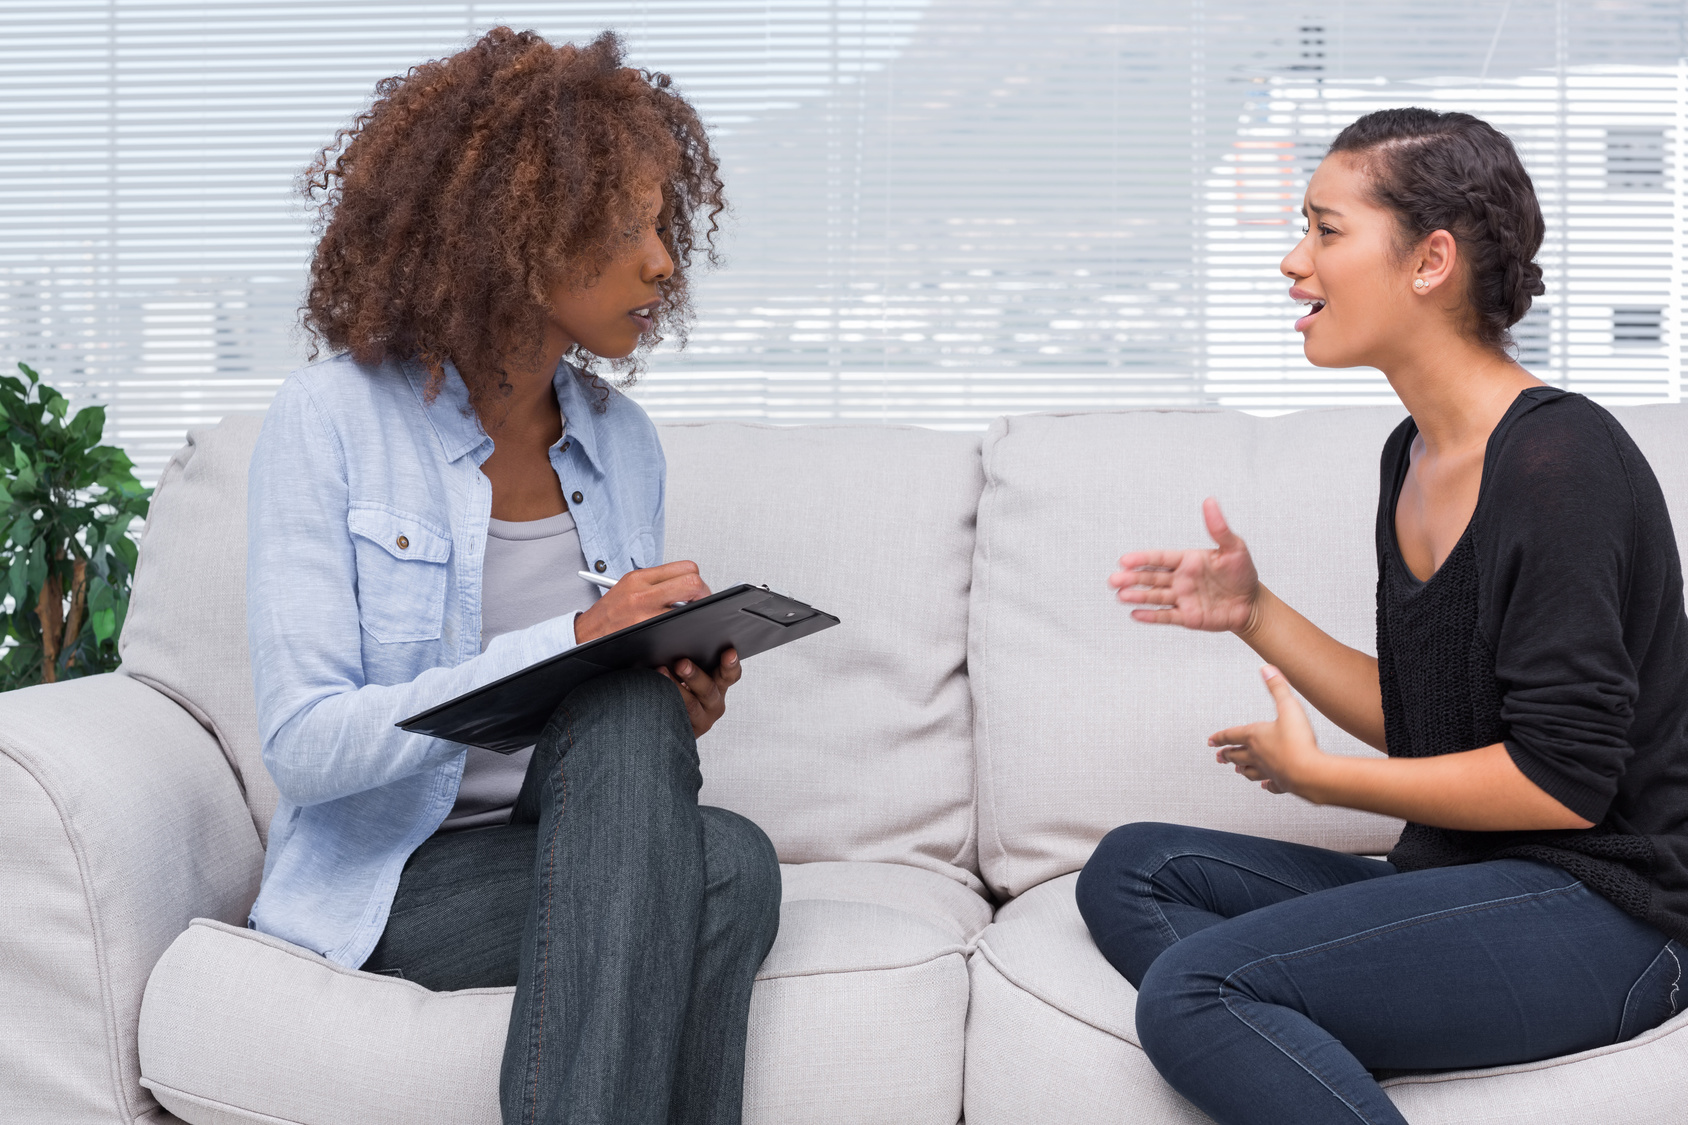 Woman gesturing and speaking to her therapist who is taking notes